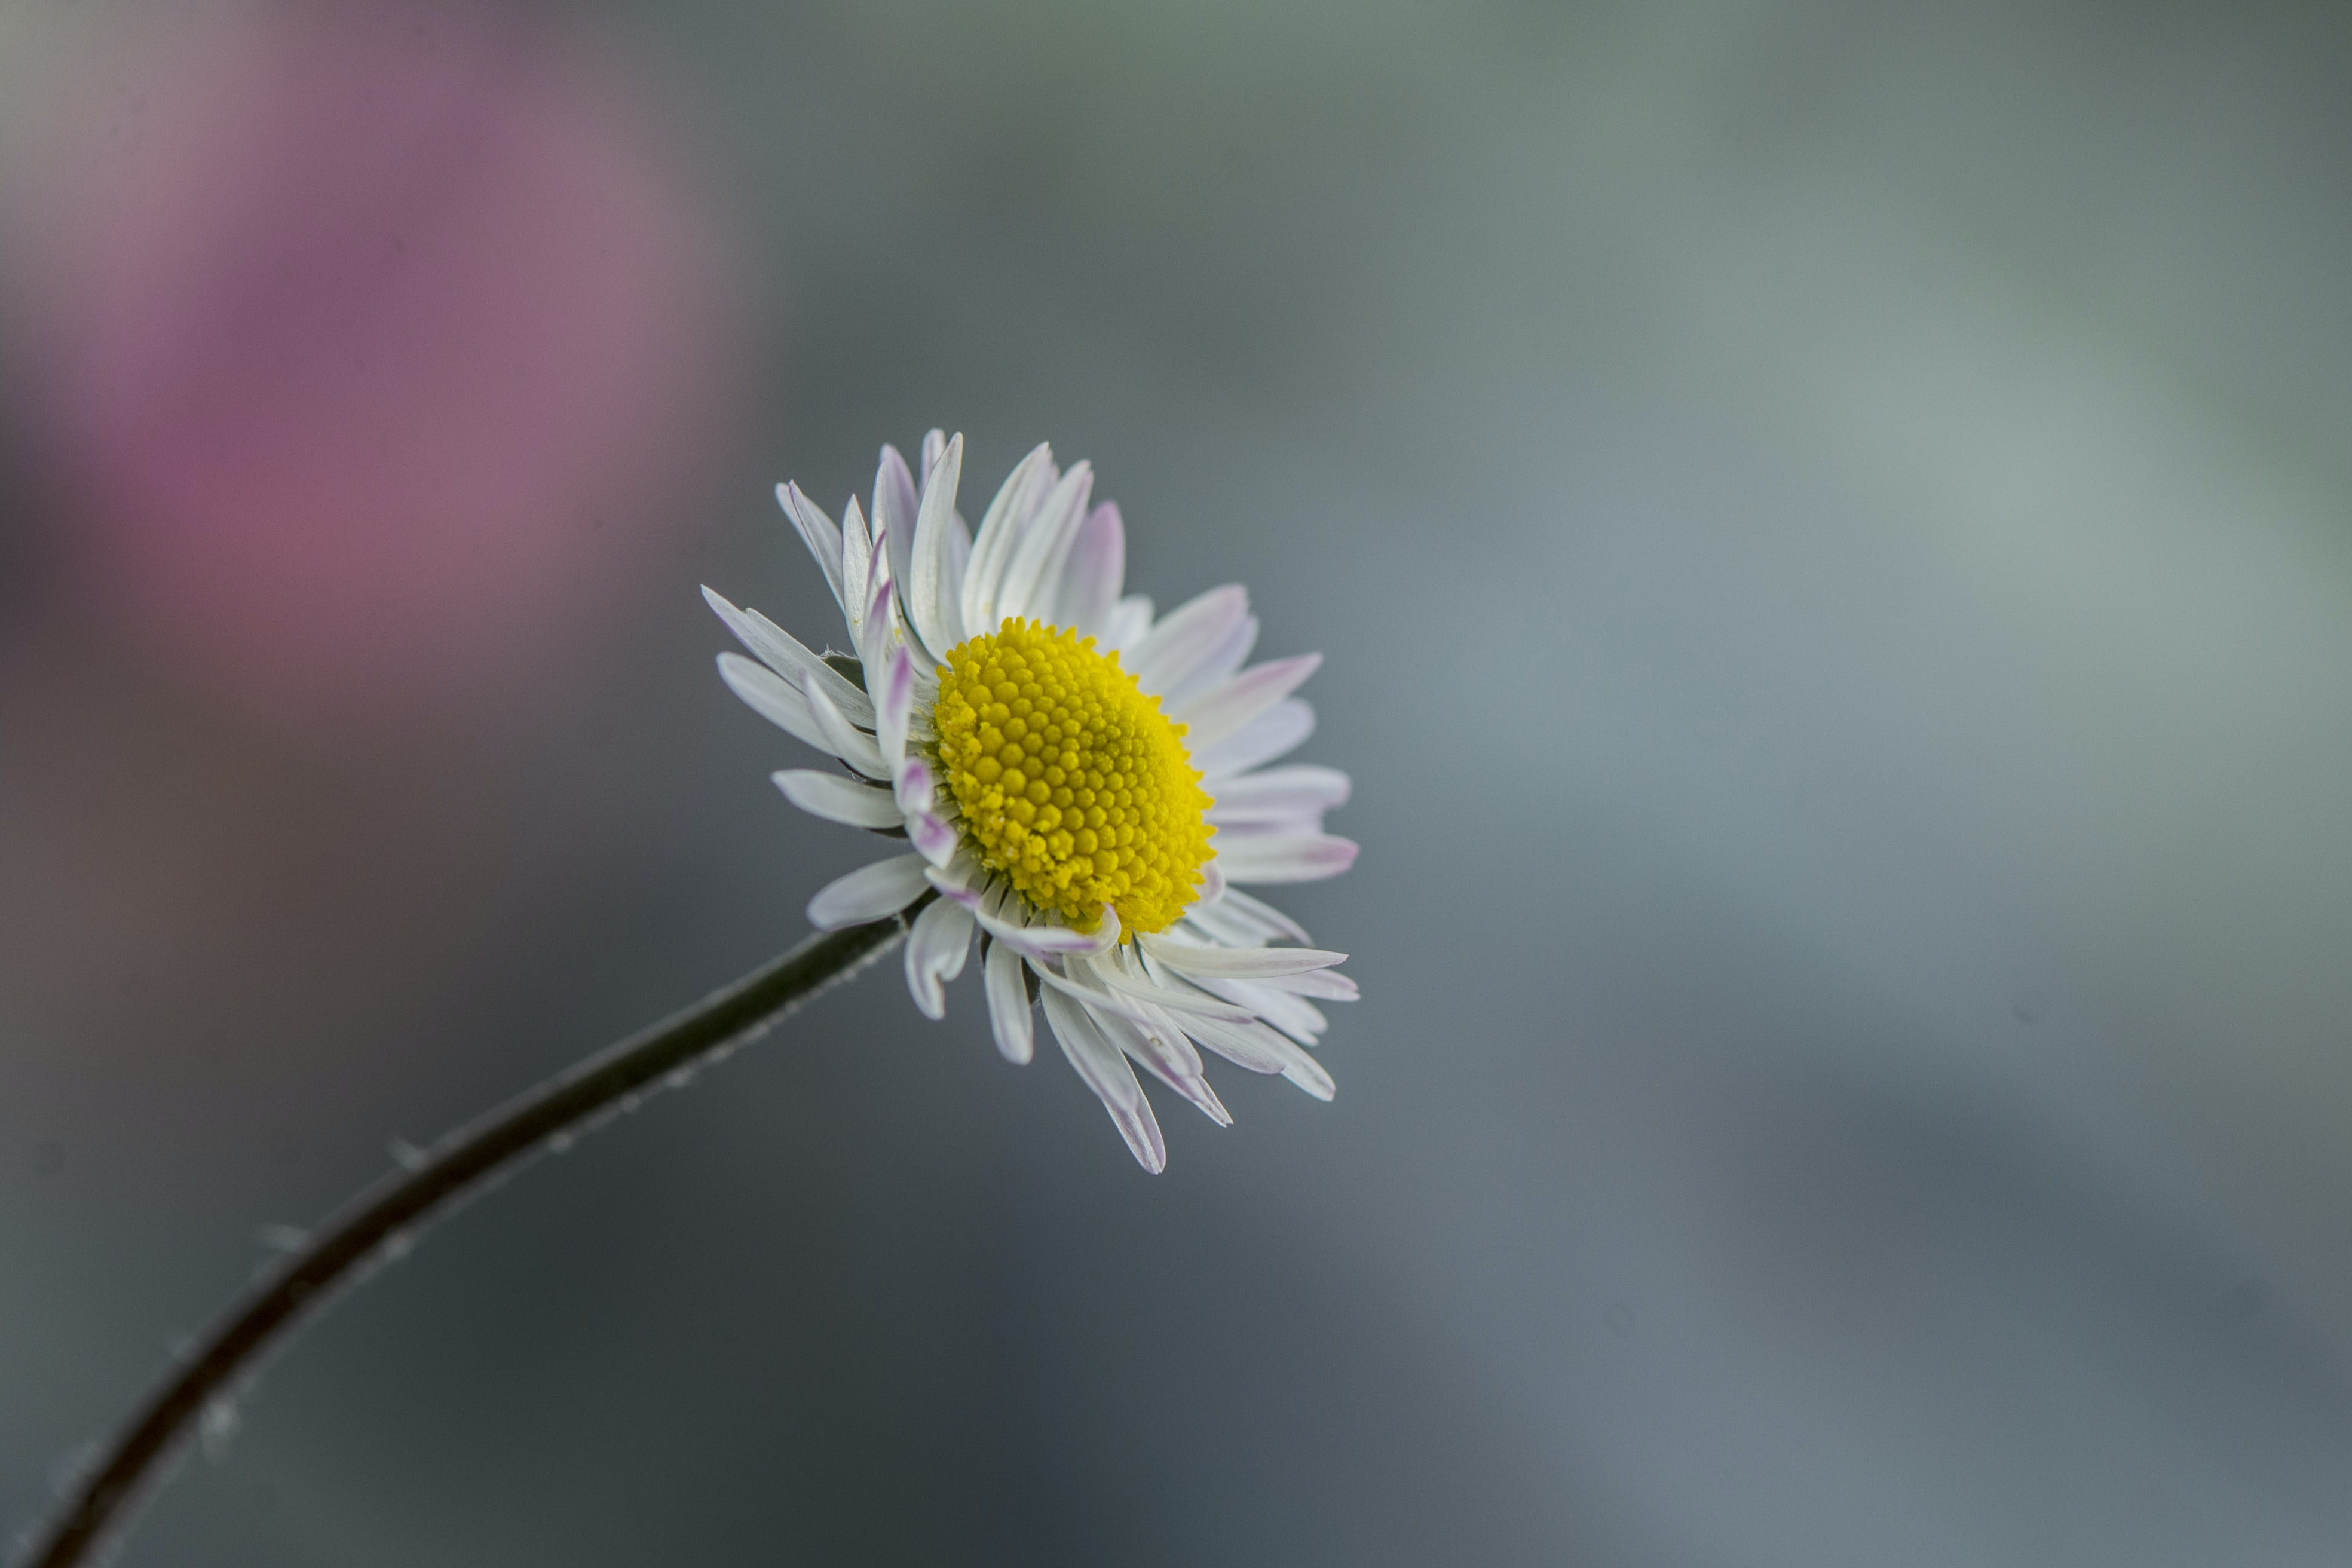 white daisy flower selective focus photography